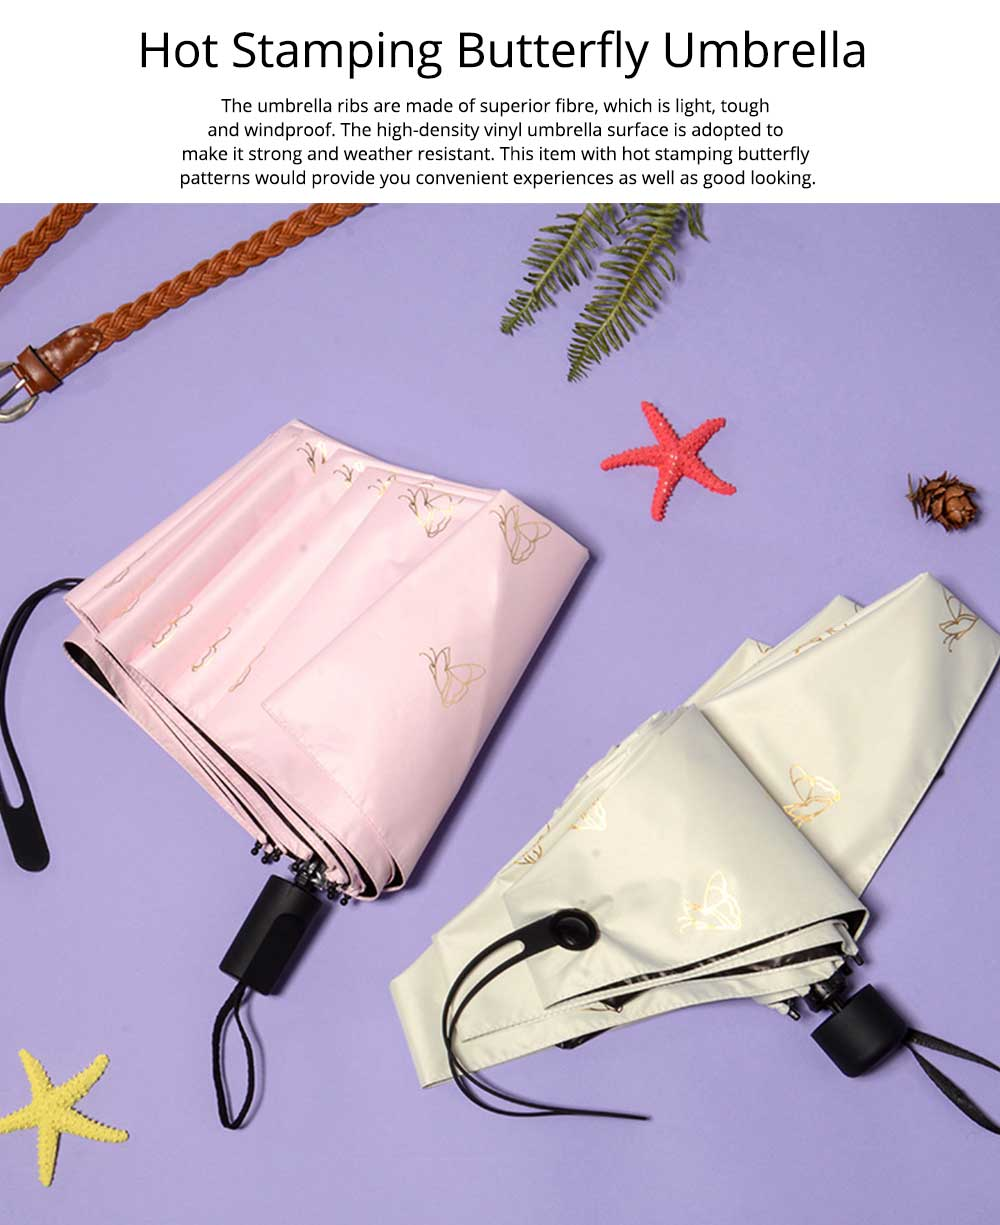 Triple or Five Folding Umbrella With Creative Hot Stamping Butterfly, Portable Folding Compact Umbrella for Sunny Rainy Days 6